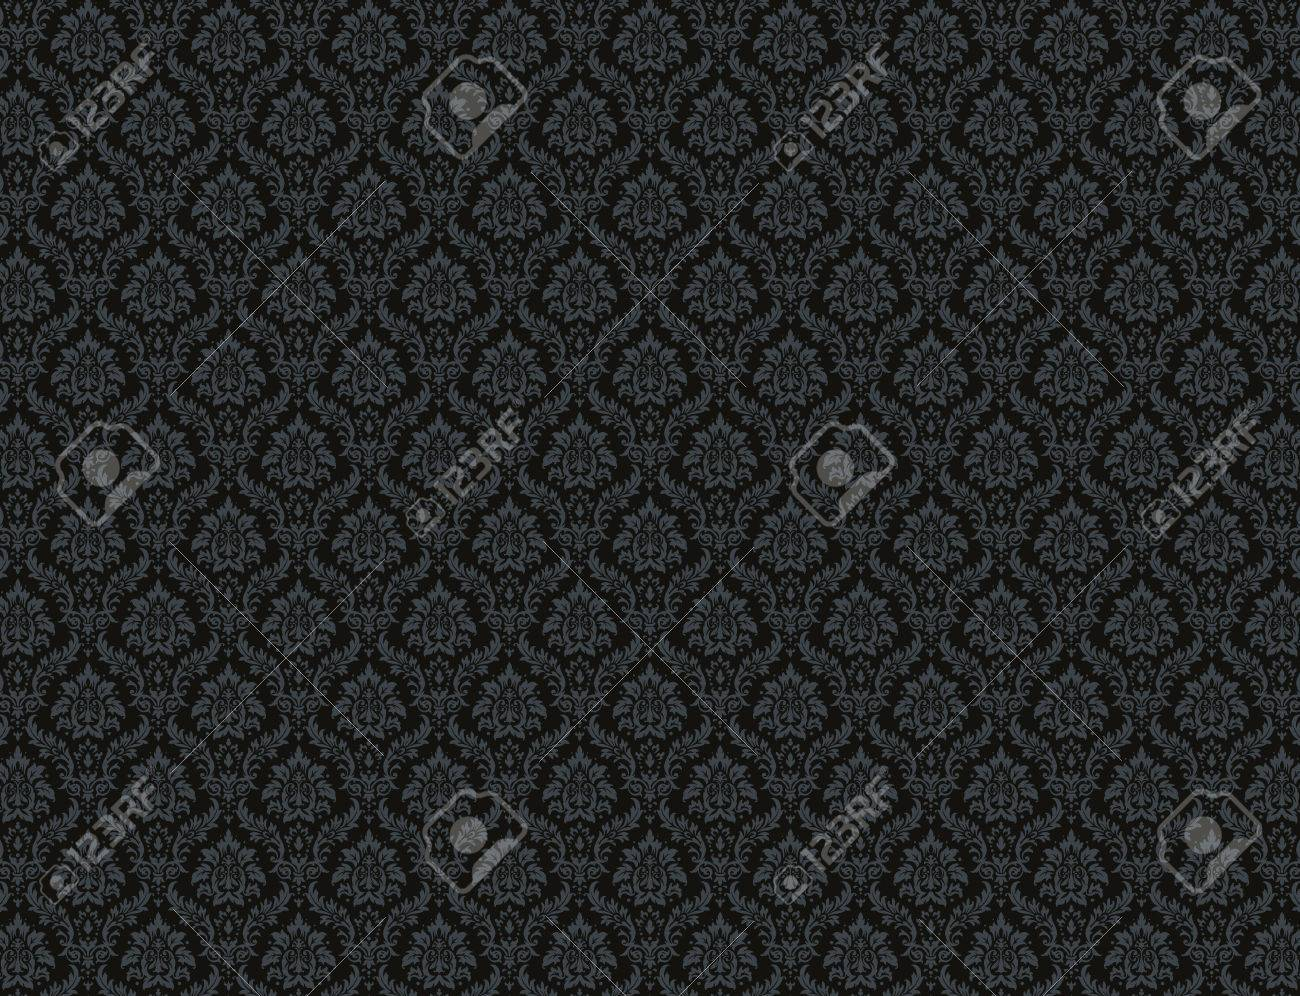 Black Damask Wallpaper With Royal Floral Patterns Stock Photo